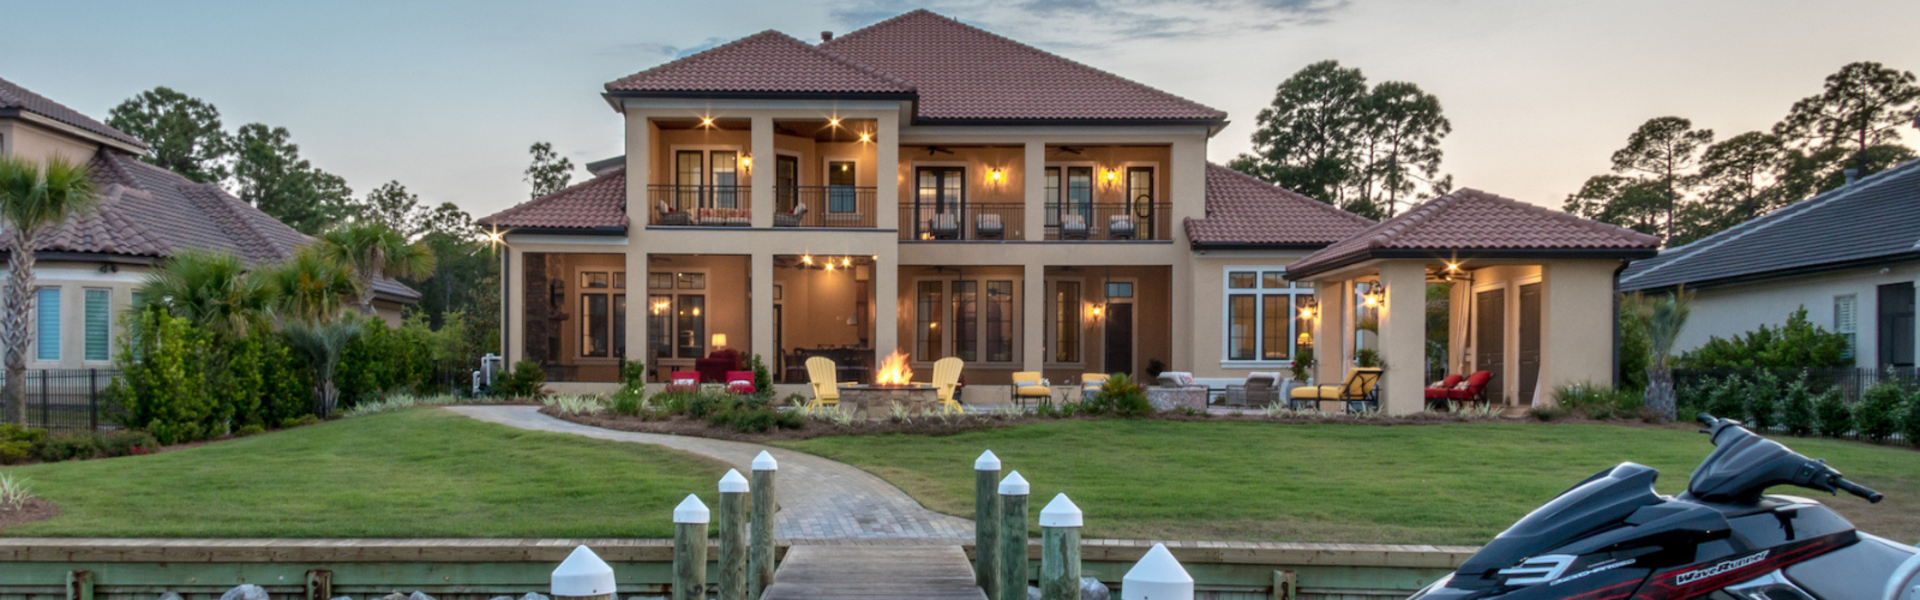 Just Listed: ICF Constructed Estate on 100-plus ft of Choctawhatchee Ba